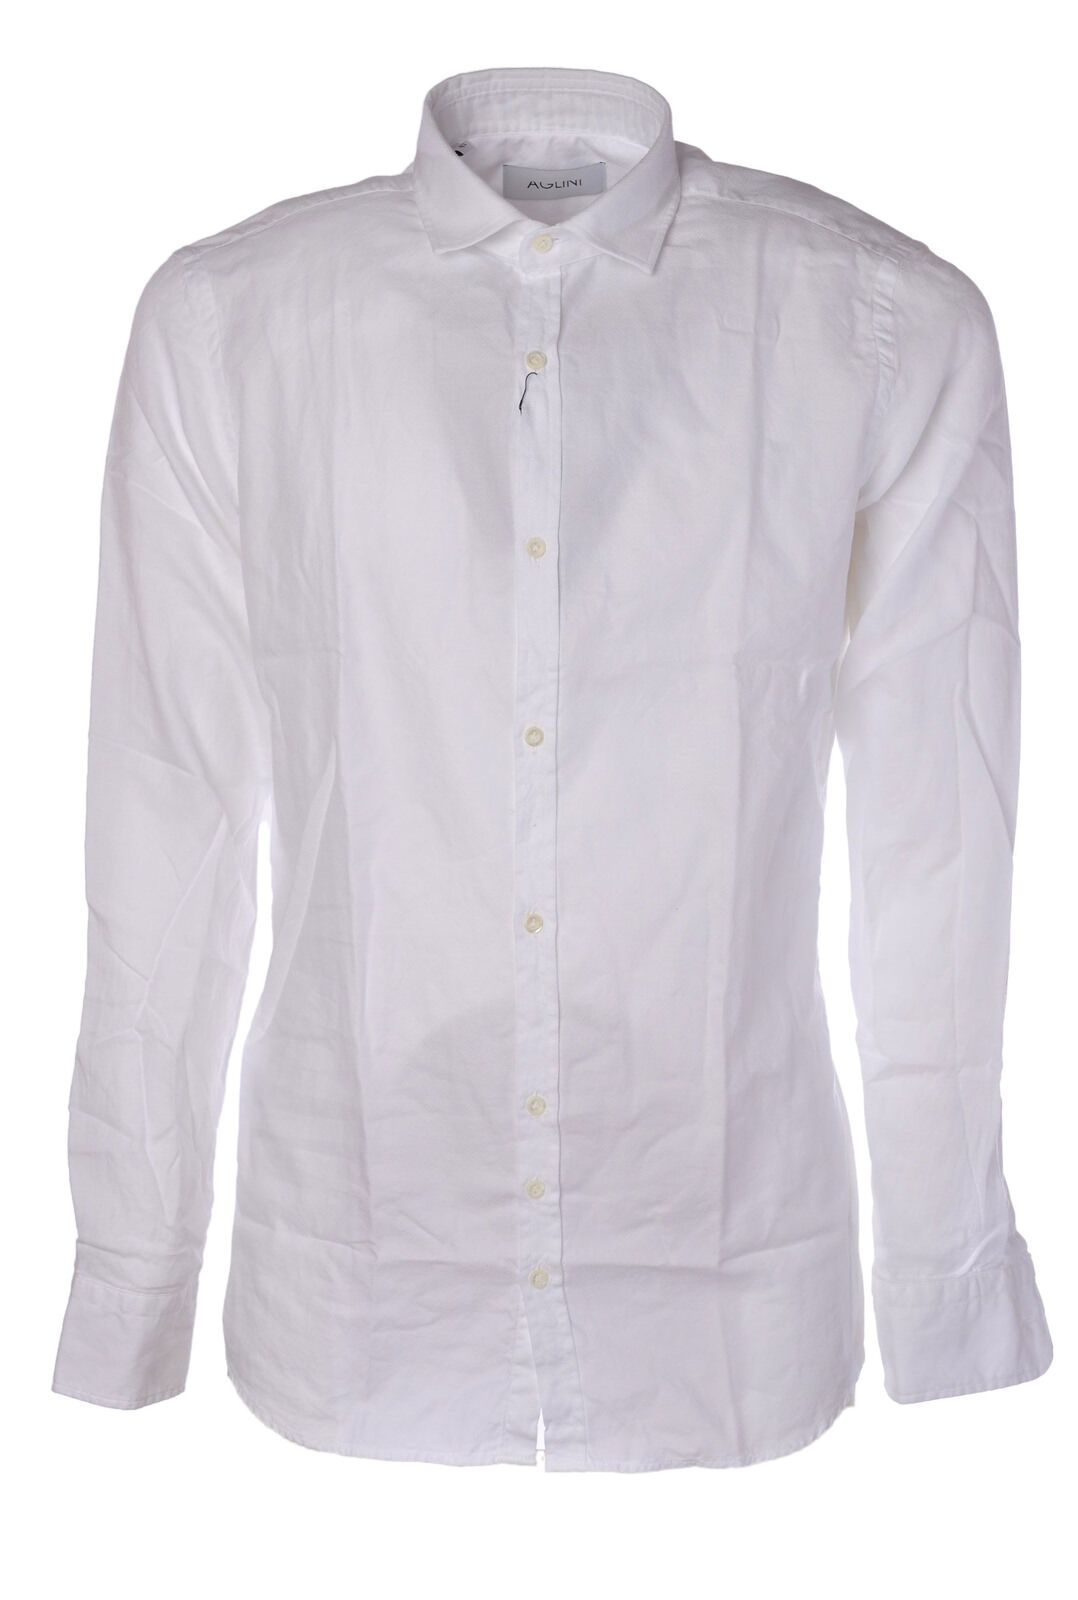 Aglini - bluesen-Shirt - Mann - white - 476215C181228